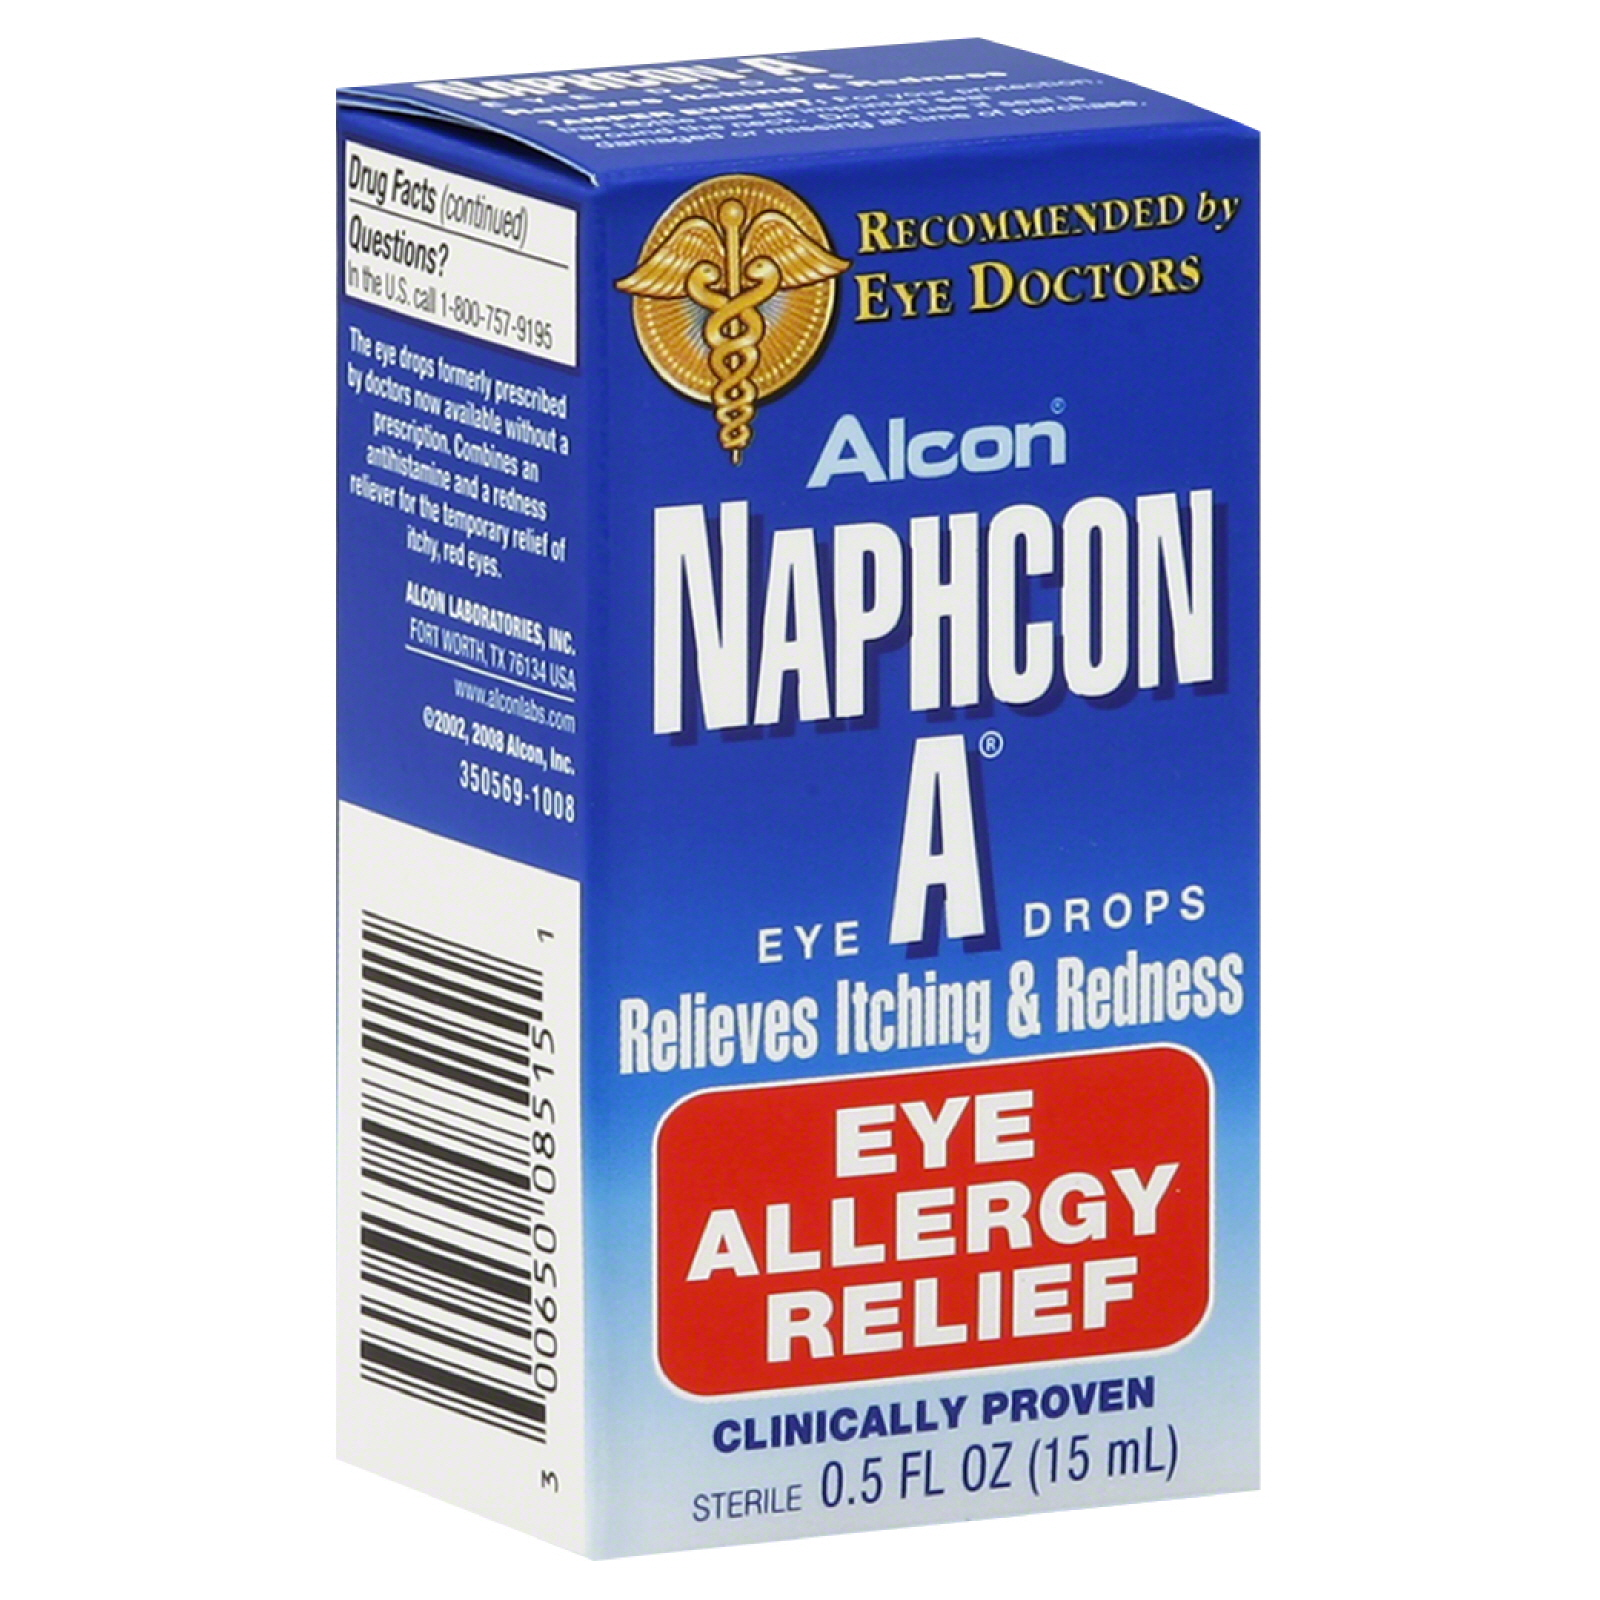 Naphcon A Eye Drops, Eye Allergy Relief, 0.5 fl oz (15 ml)                                                                       at mygofer.com